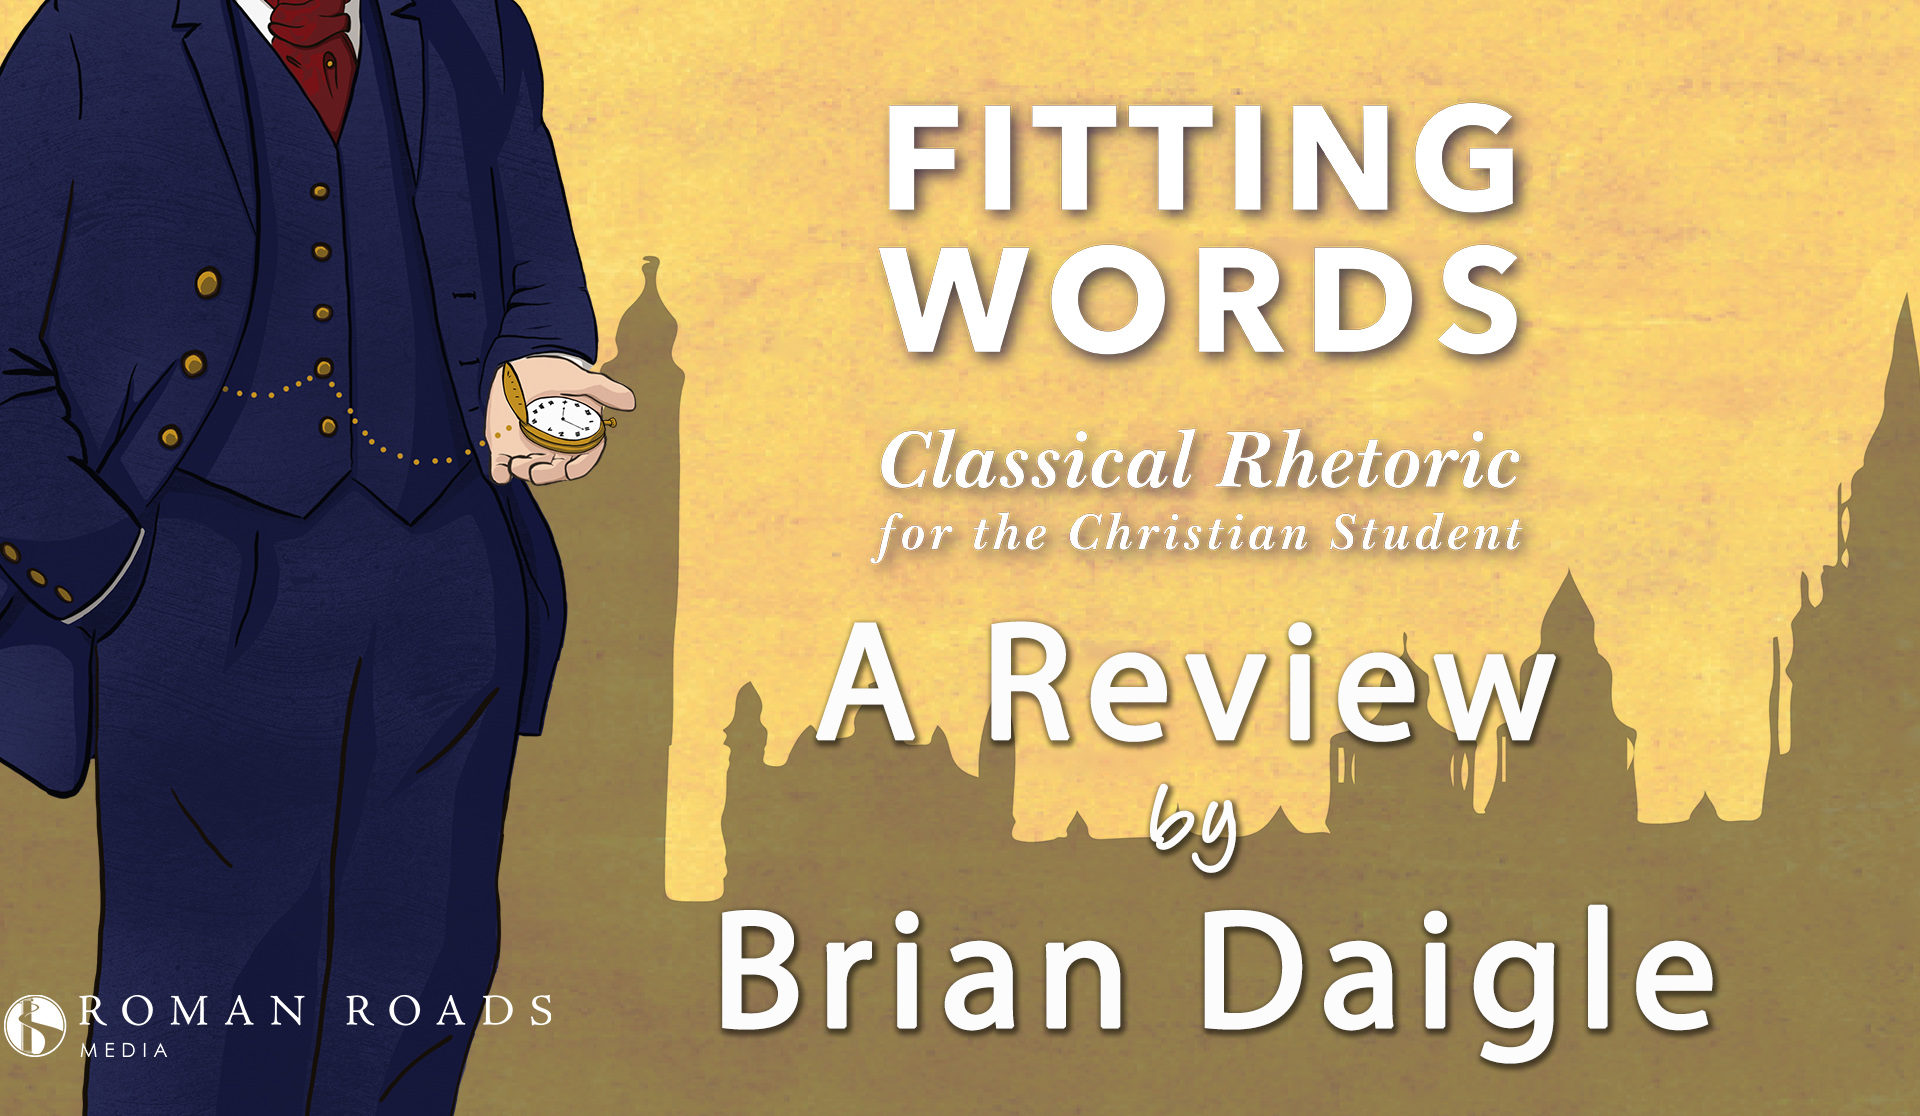 Review of Fitting Words by Brian Daigle